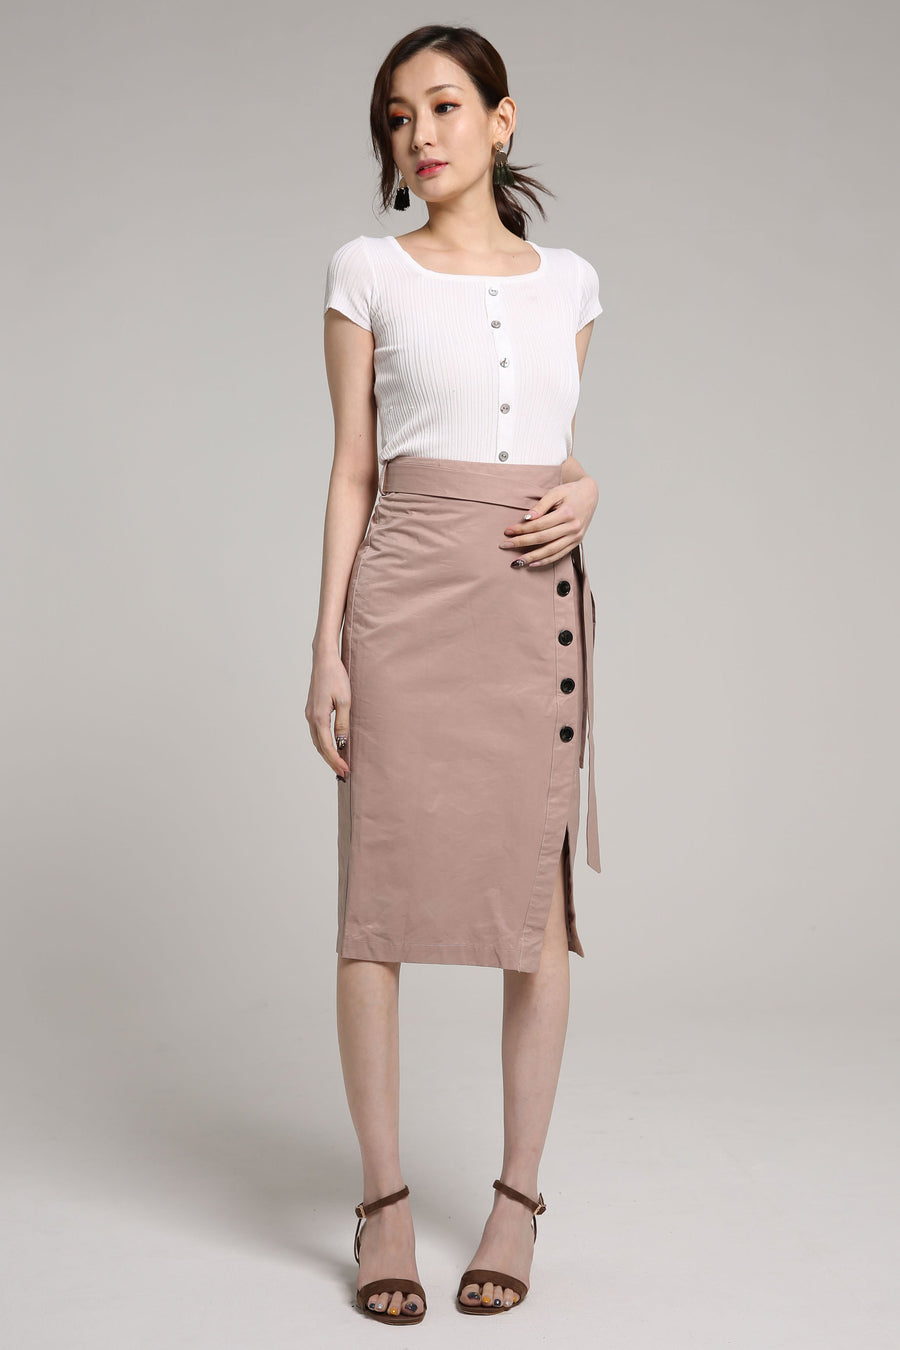 A Line Midi Skirt with Button Detail 2099